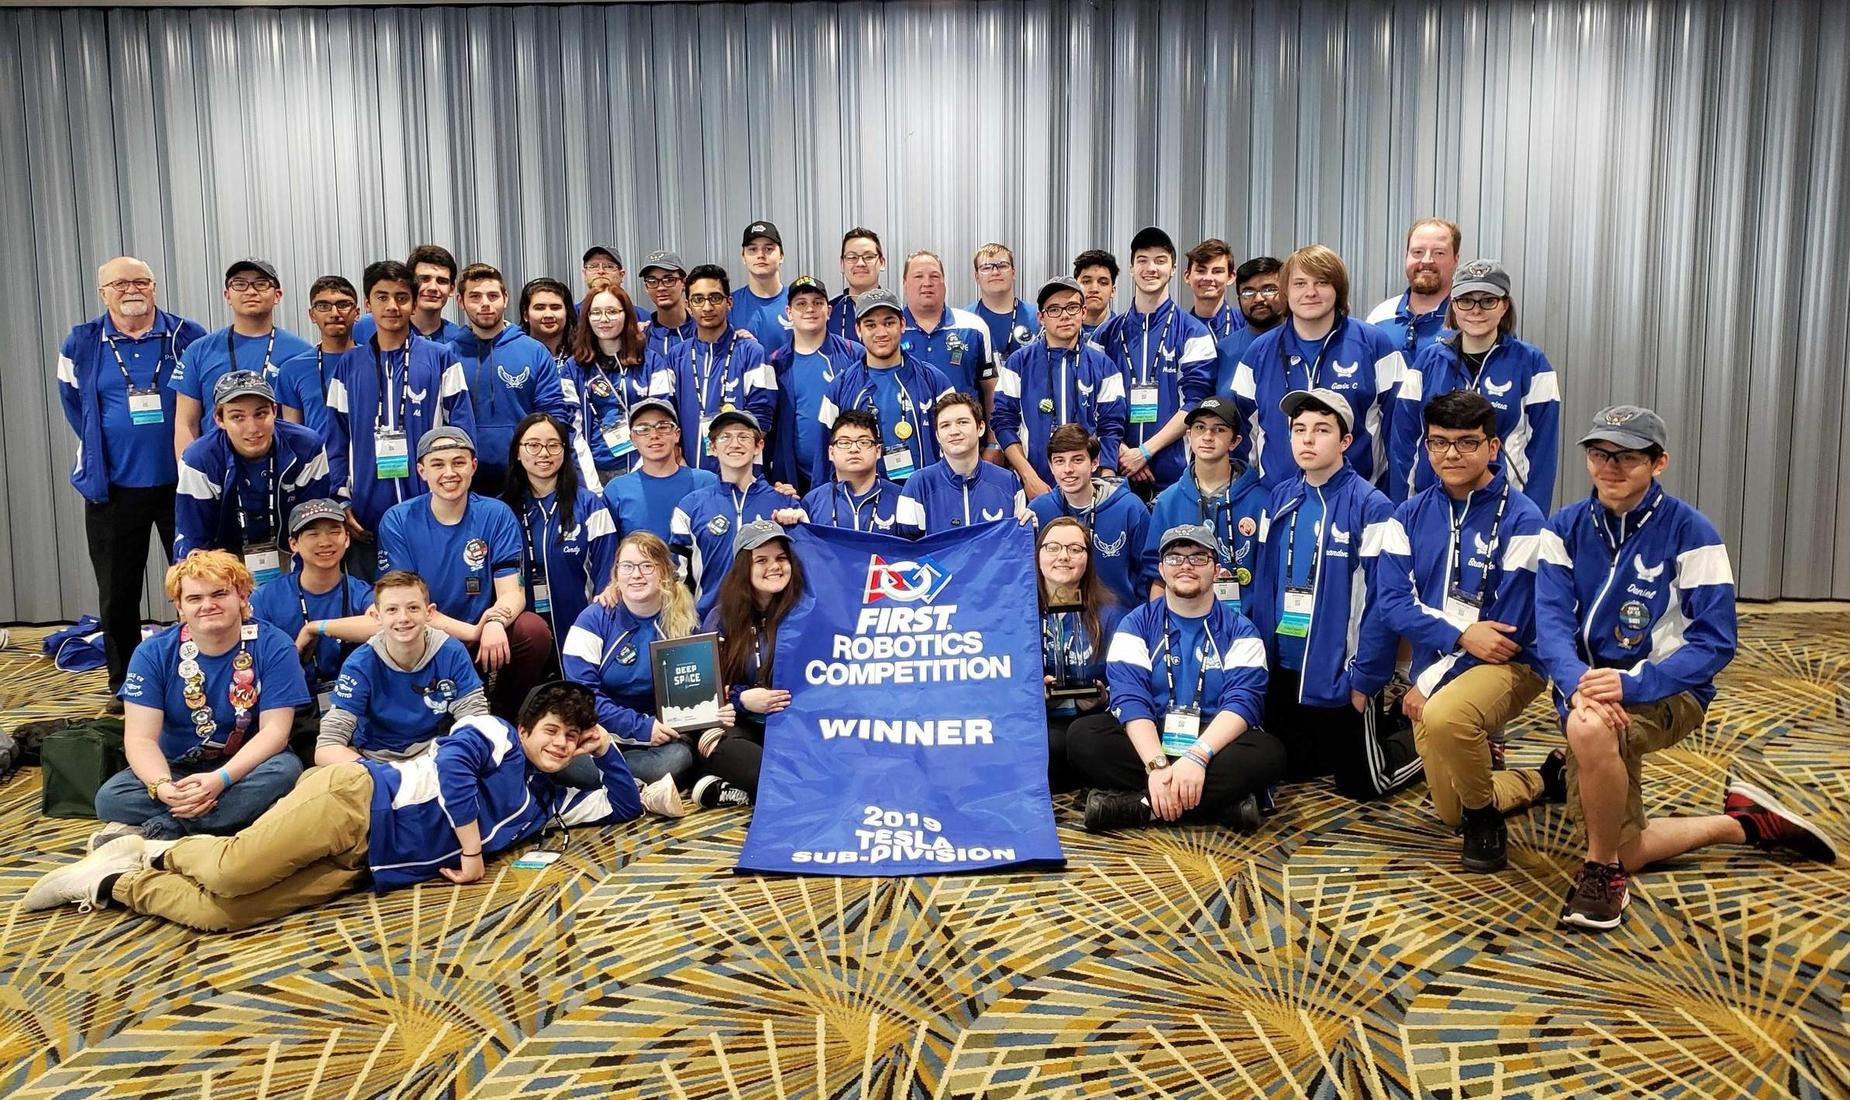 BHS Robotics Team at FIRST Robotics World Championships. They are wearing blue t-shirts and holding a winning banner.